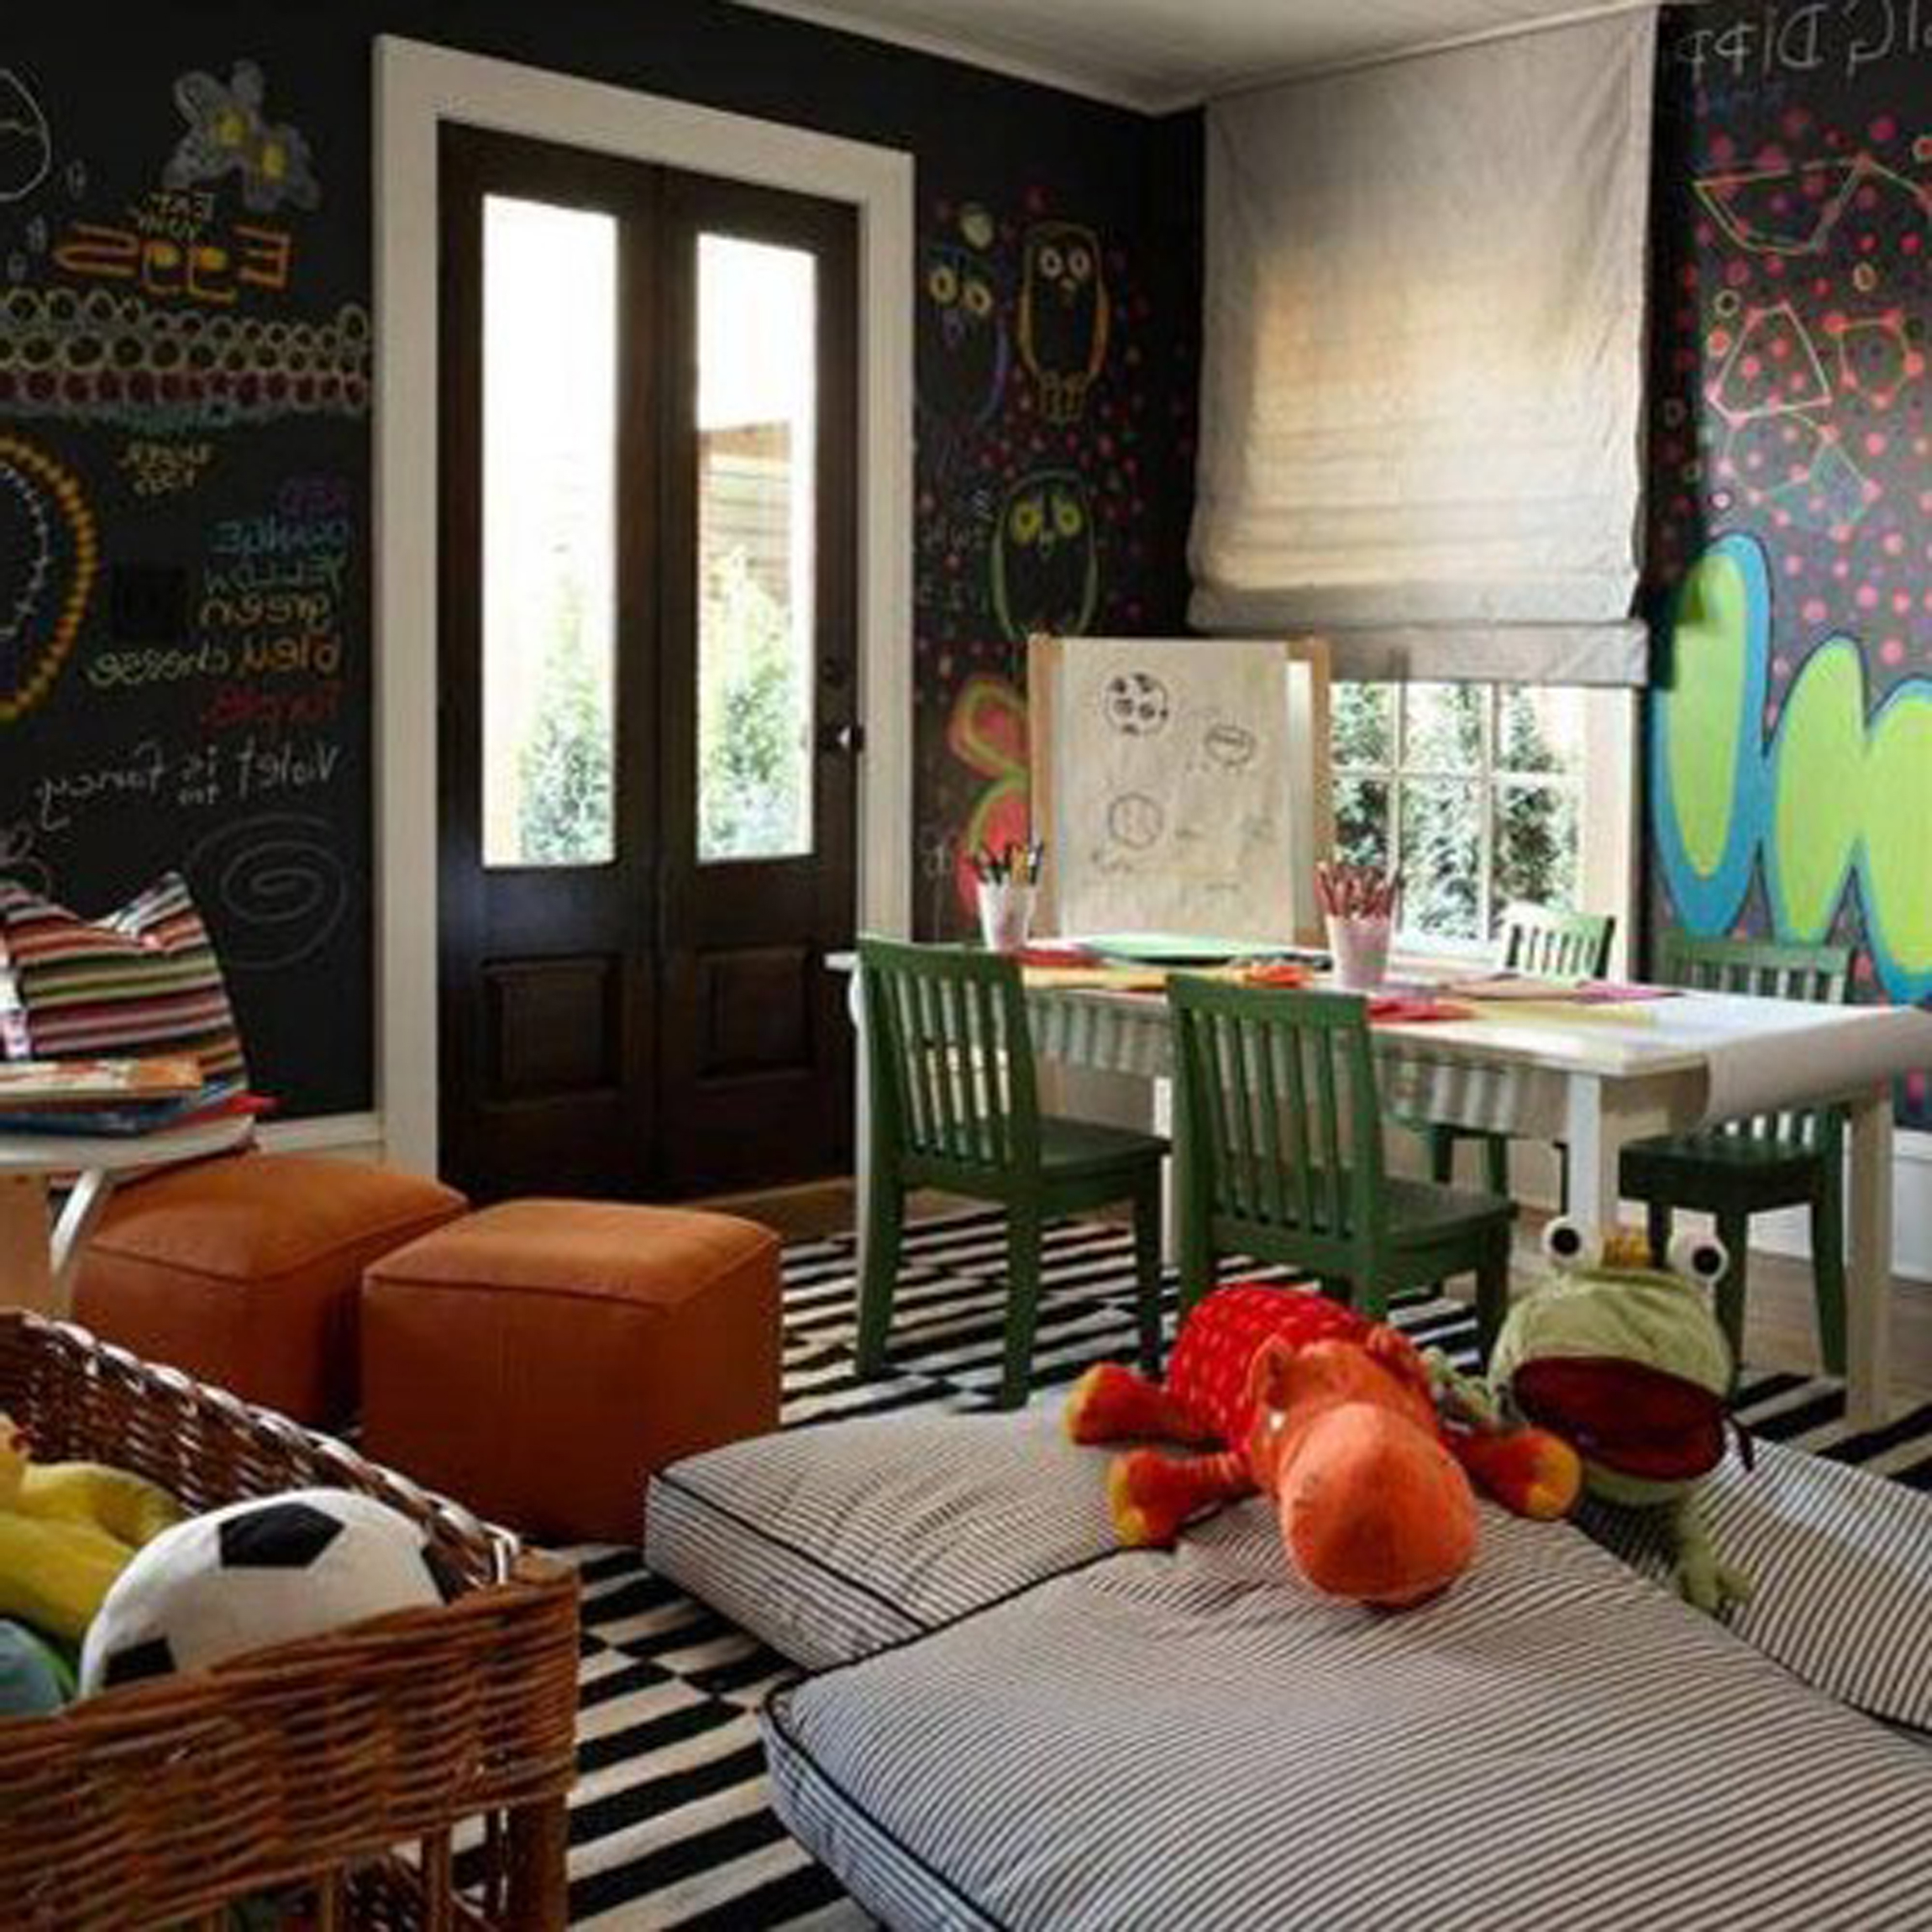 Kids Room Ideas With Fancy Blackand White Stripes Rug Pattern Plus Nice Brown Ottoman Design Also Endearing Chalkboard Decor For Cozy Kids Room Ideas (View 18 of 28)